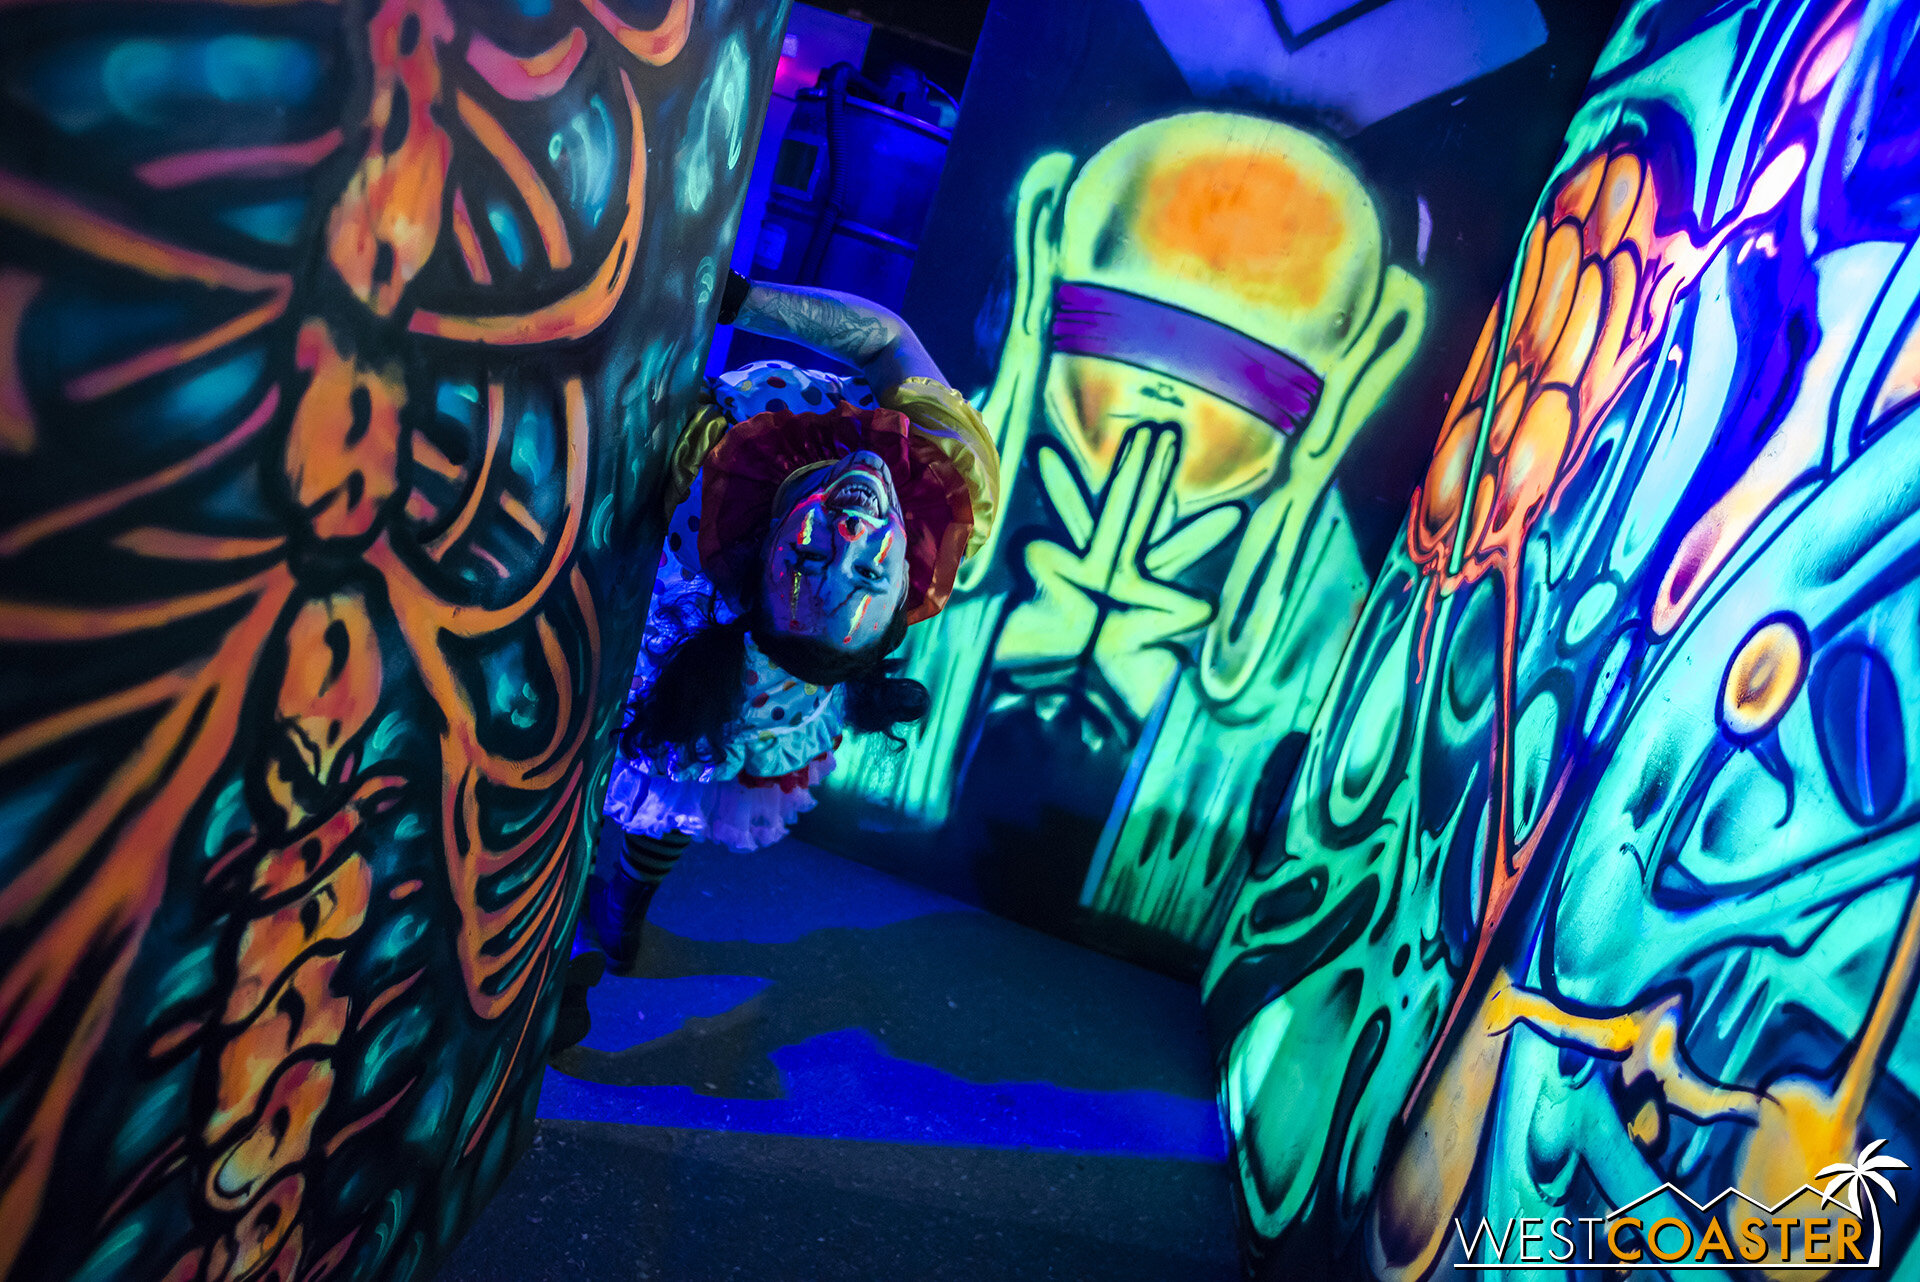 A psychedelic clown maze glows colorfully in Chromadepth rendition.